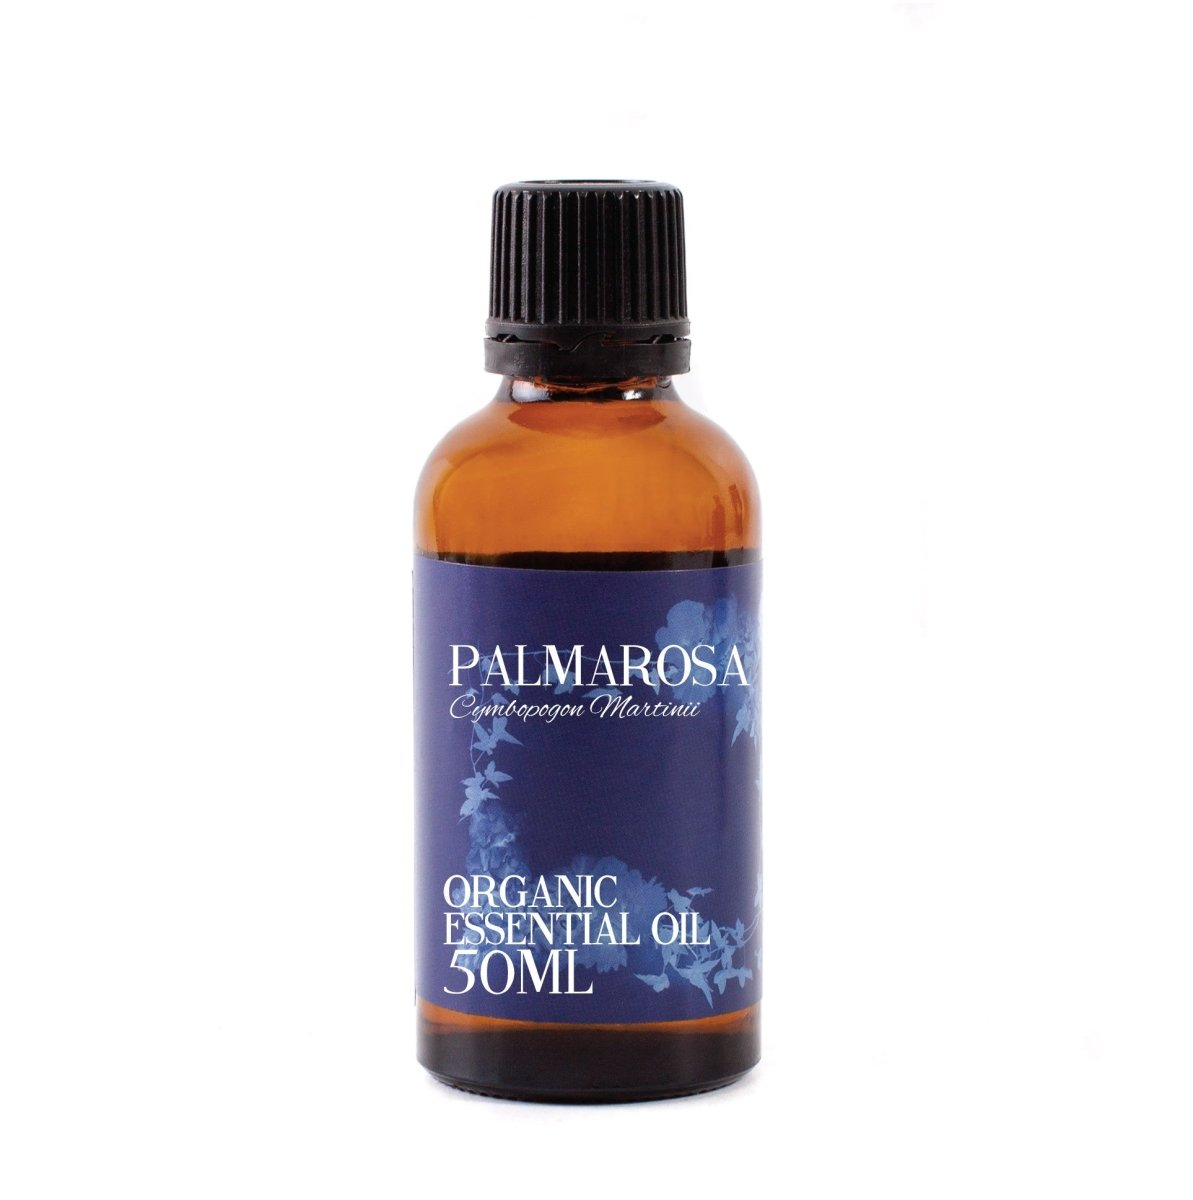 Palmarosa Organic Essential Oil - Mystic Moments UK